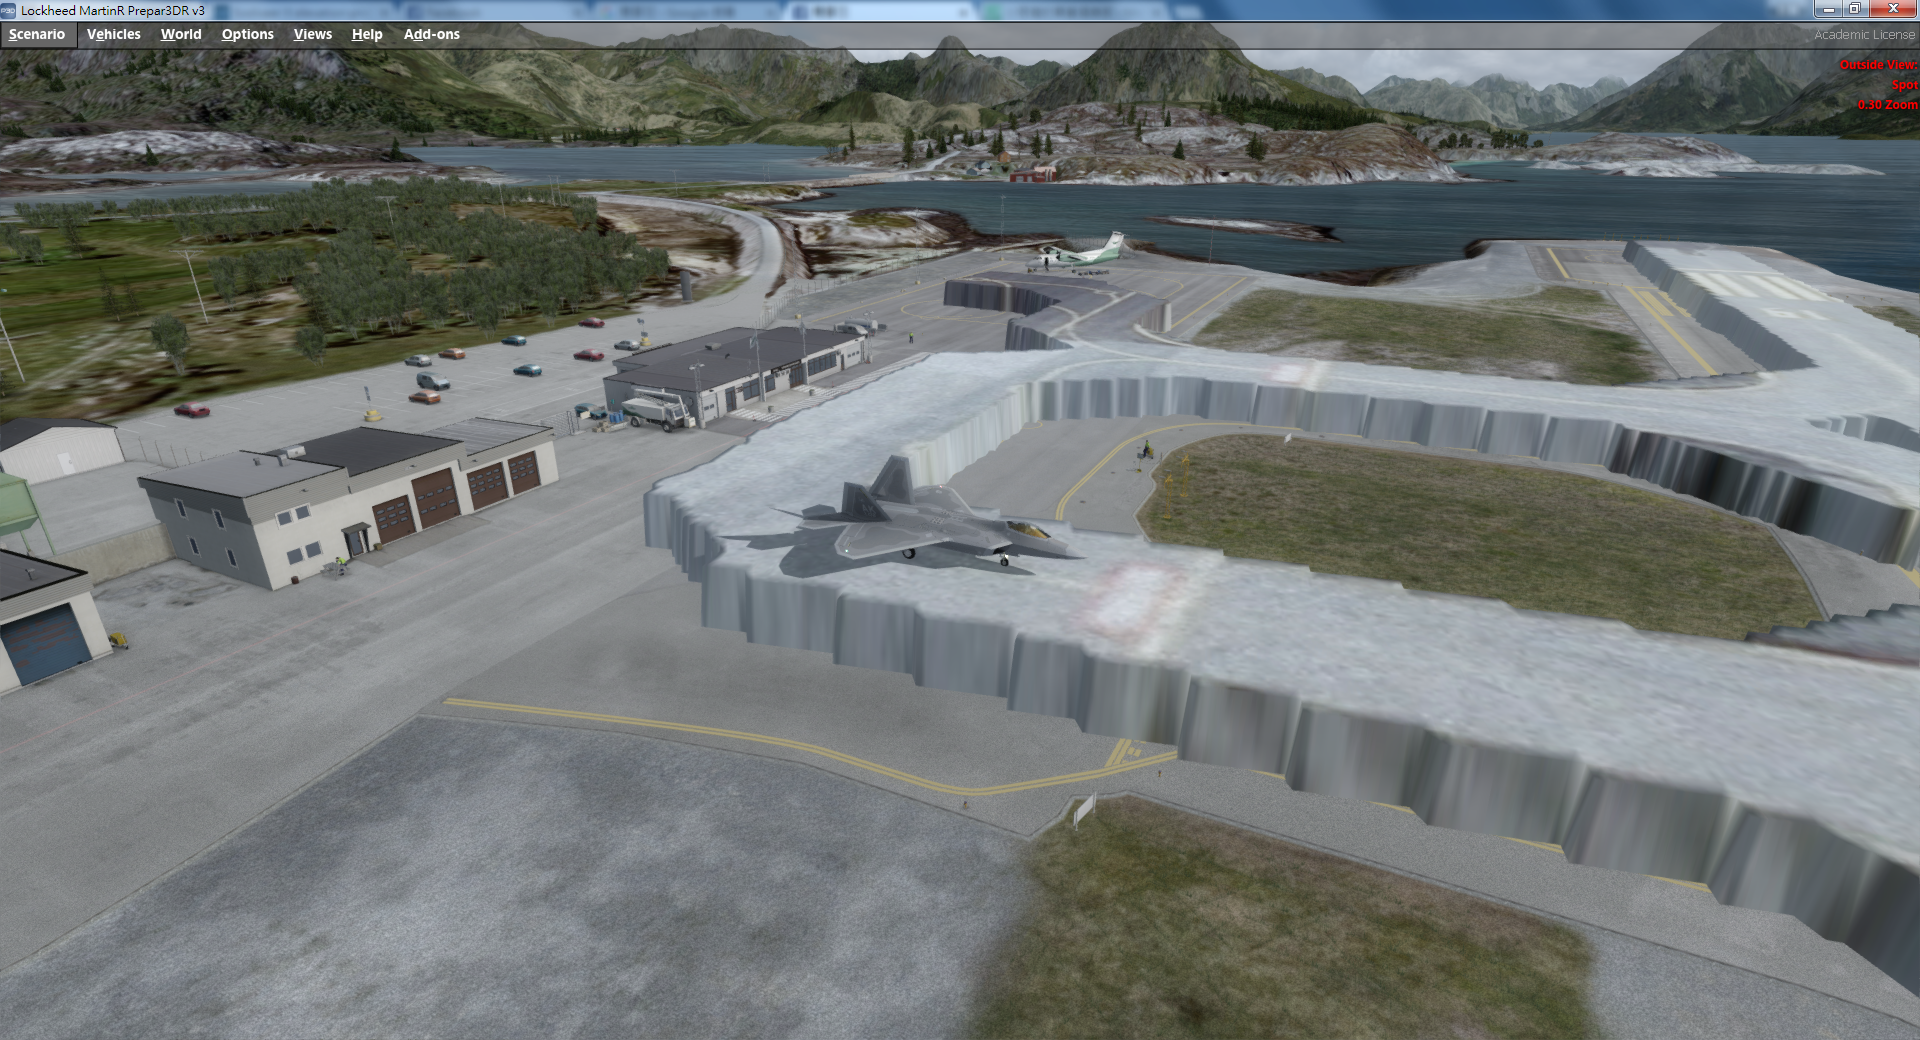 Svolvaer X elevation problem - Aerosoft Scenery - AEROSOFT COMMUNITY